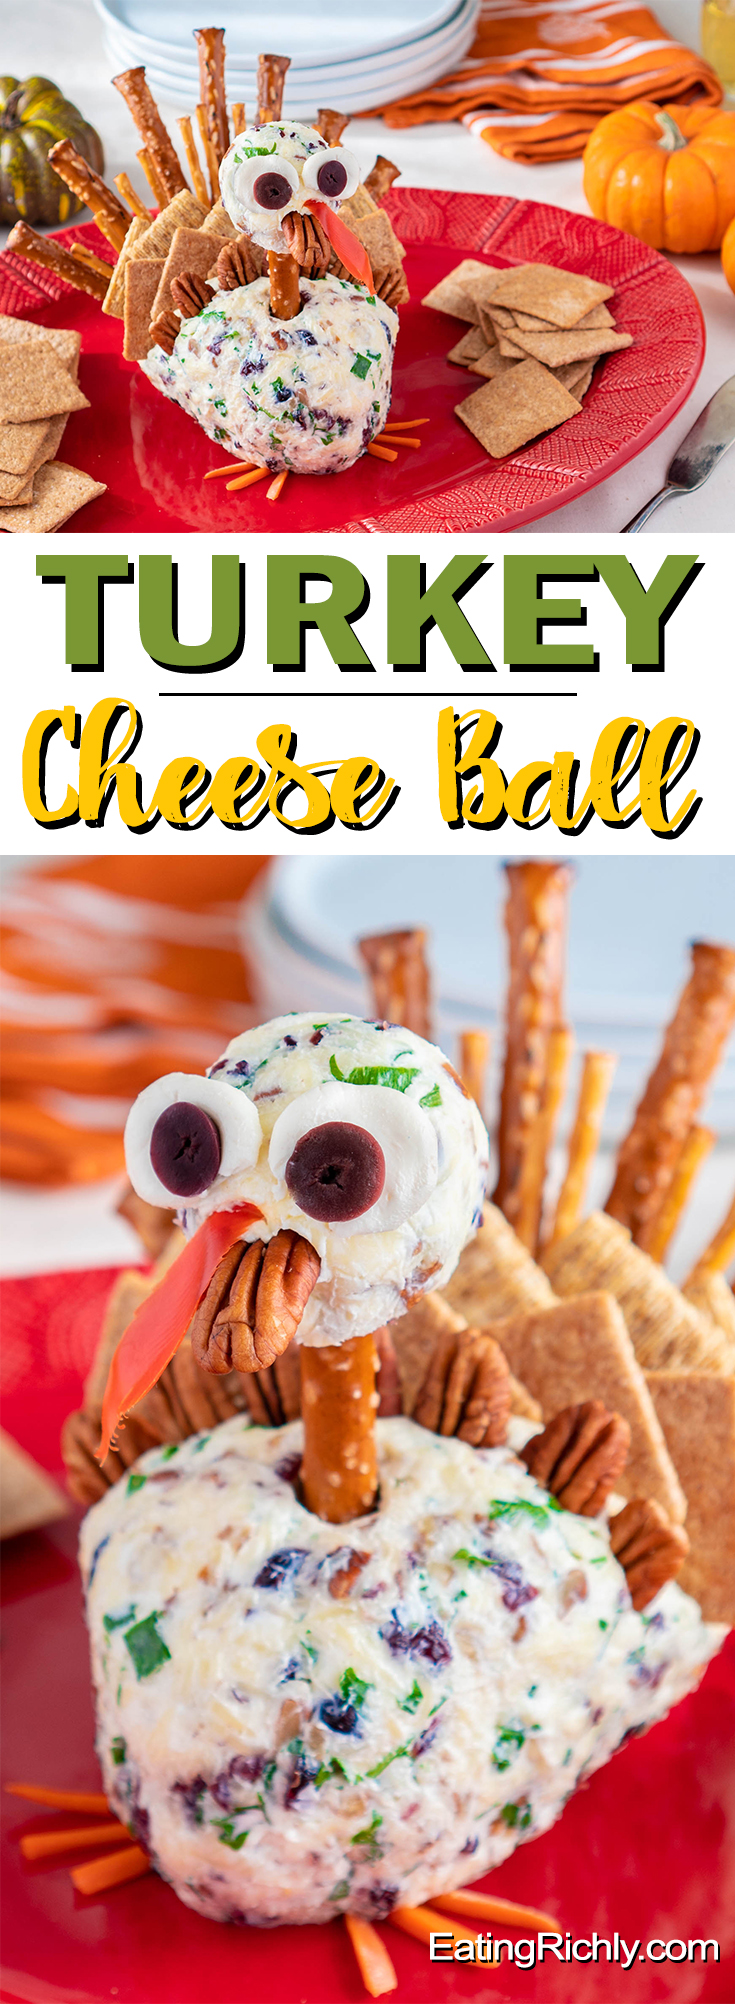 Impress your dinner guests with this adorable Turkey Cheese Ball Thanksgiving Appetizer. Holiday flavors like cranberries and toasted pecans are mixed with organic dairy for a Thanksgiving cheese ball that looks as good as it tastes.  #thanksgiving #thanksgivingrecipes  #thanksgivingdinner #thanksgivingtable #cheese #cheeseball #appetizers #appetizerrecipes #appetizerideas #organic #cute #cutefood